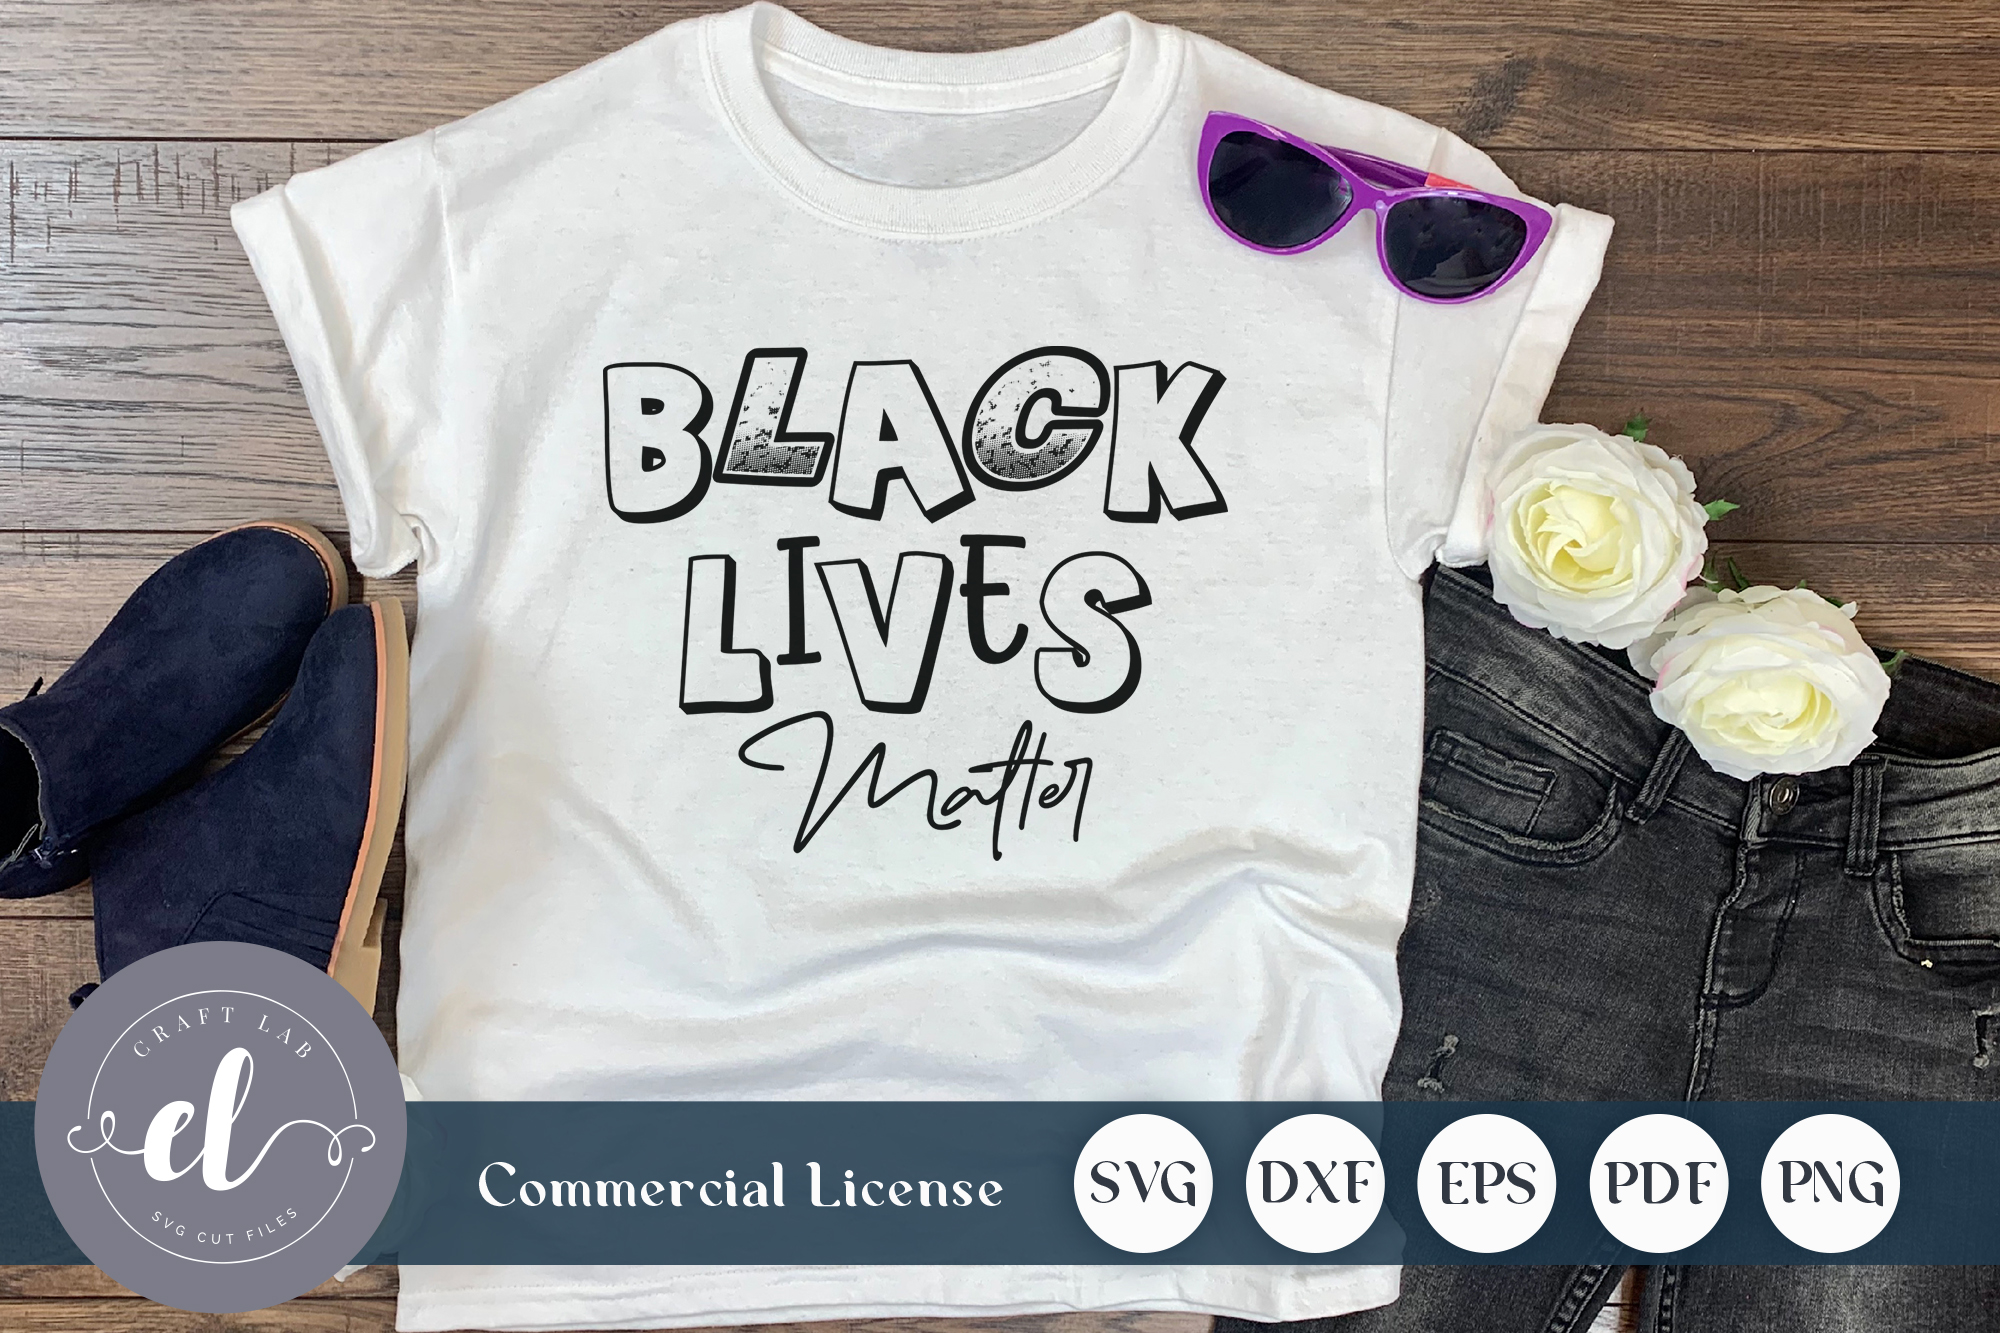 Download Free Black Lives Matter Graphic By Craftlabsvg Creative Fabrica for Cricut Explore, Silhouette and other cutting machines.